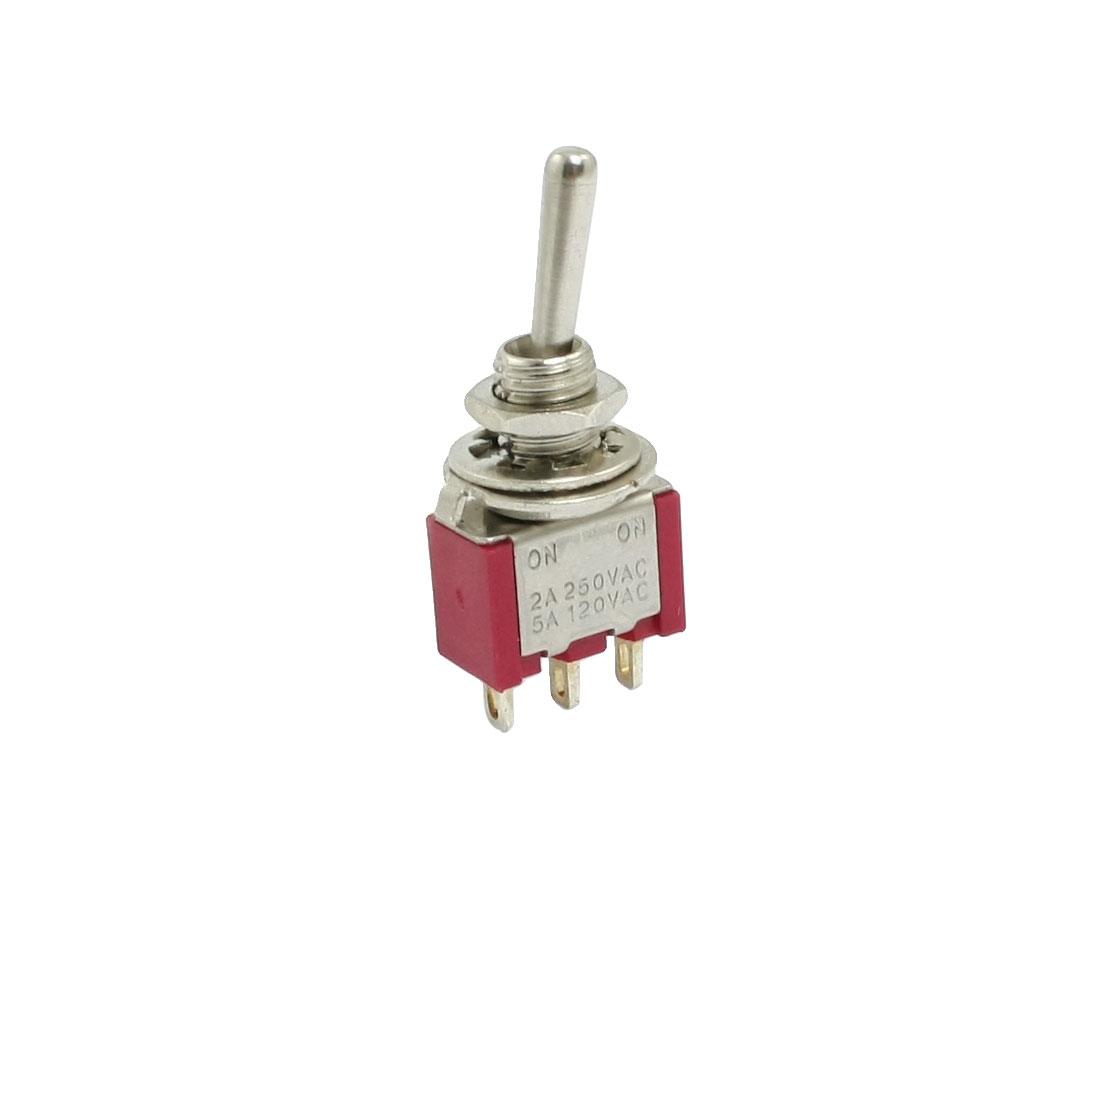 AC 250V/2A 125V/5A ON/ON 2 Position Toggle Switch SPDT Red